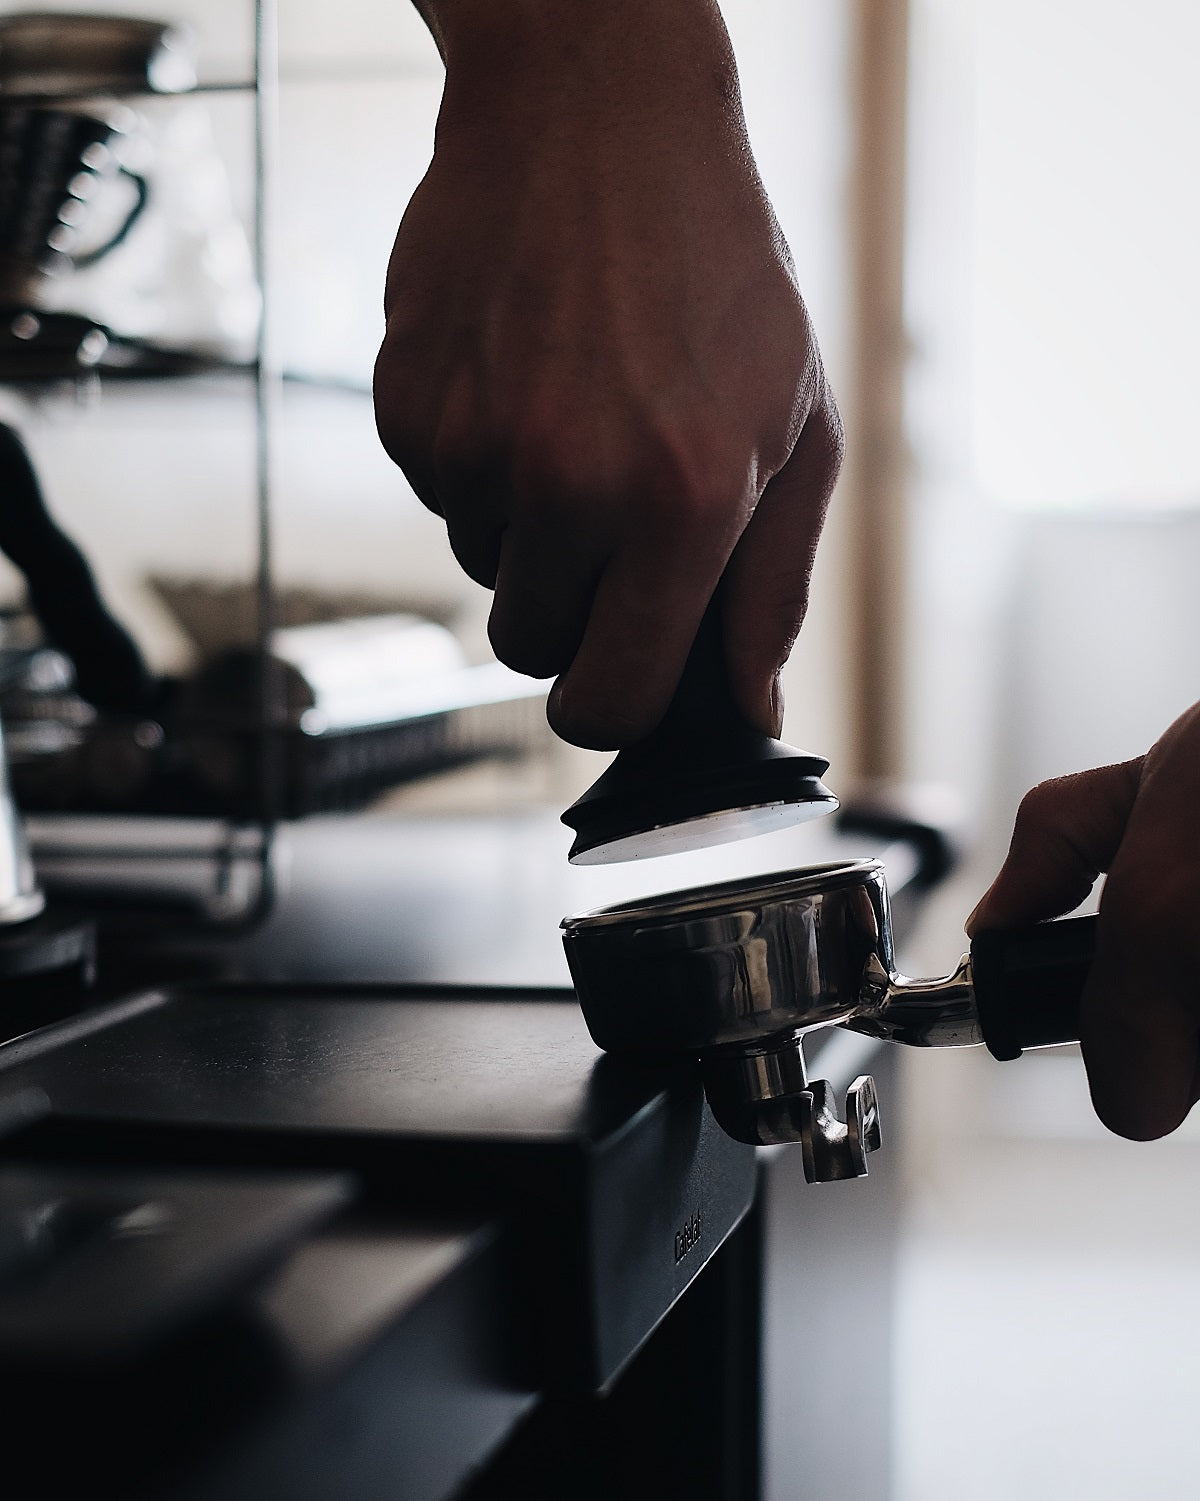 tamping an espresso shot